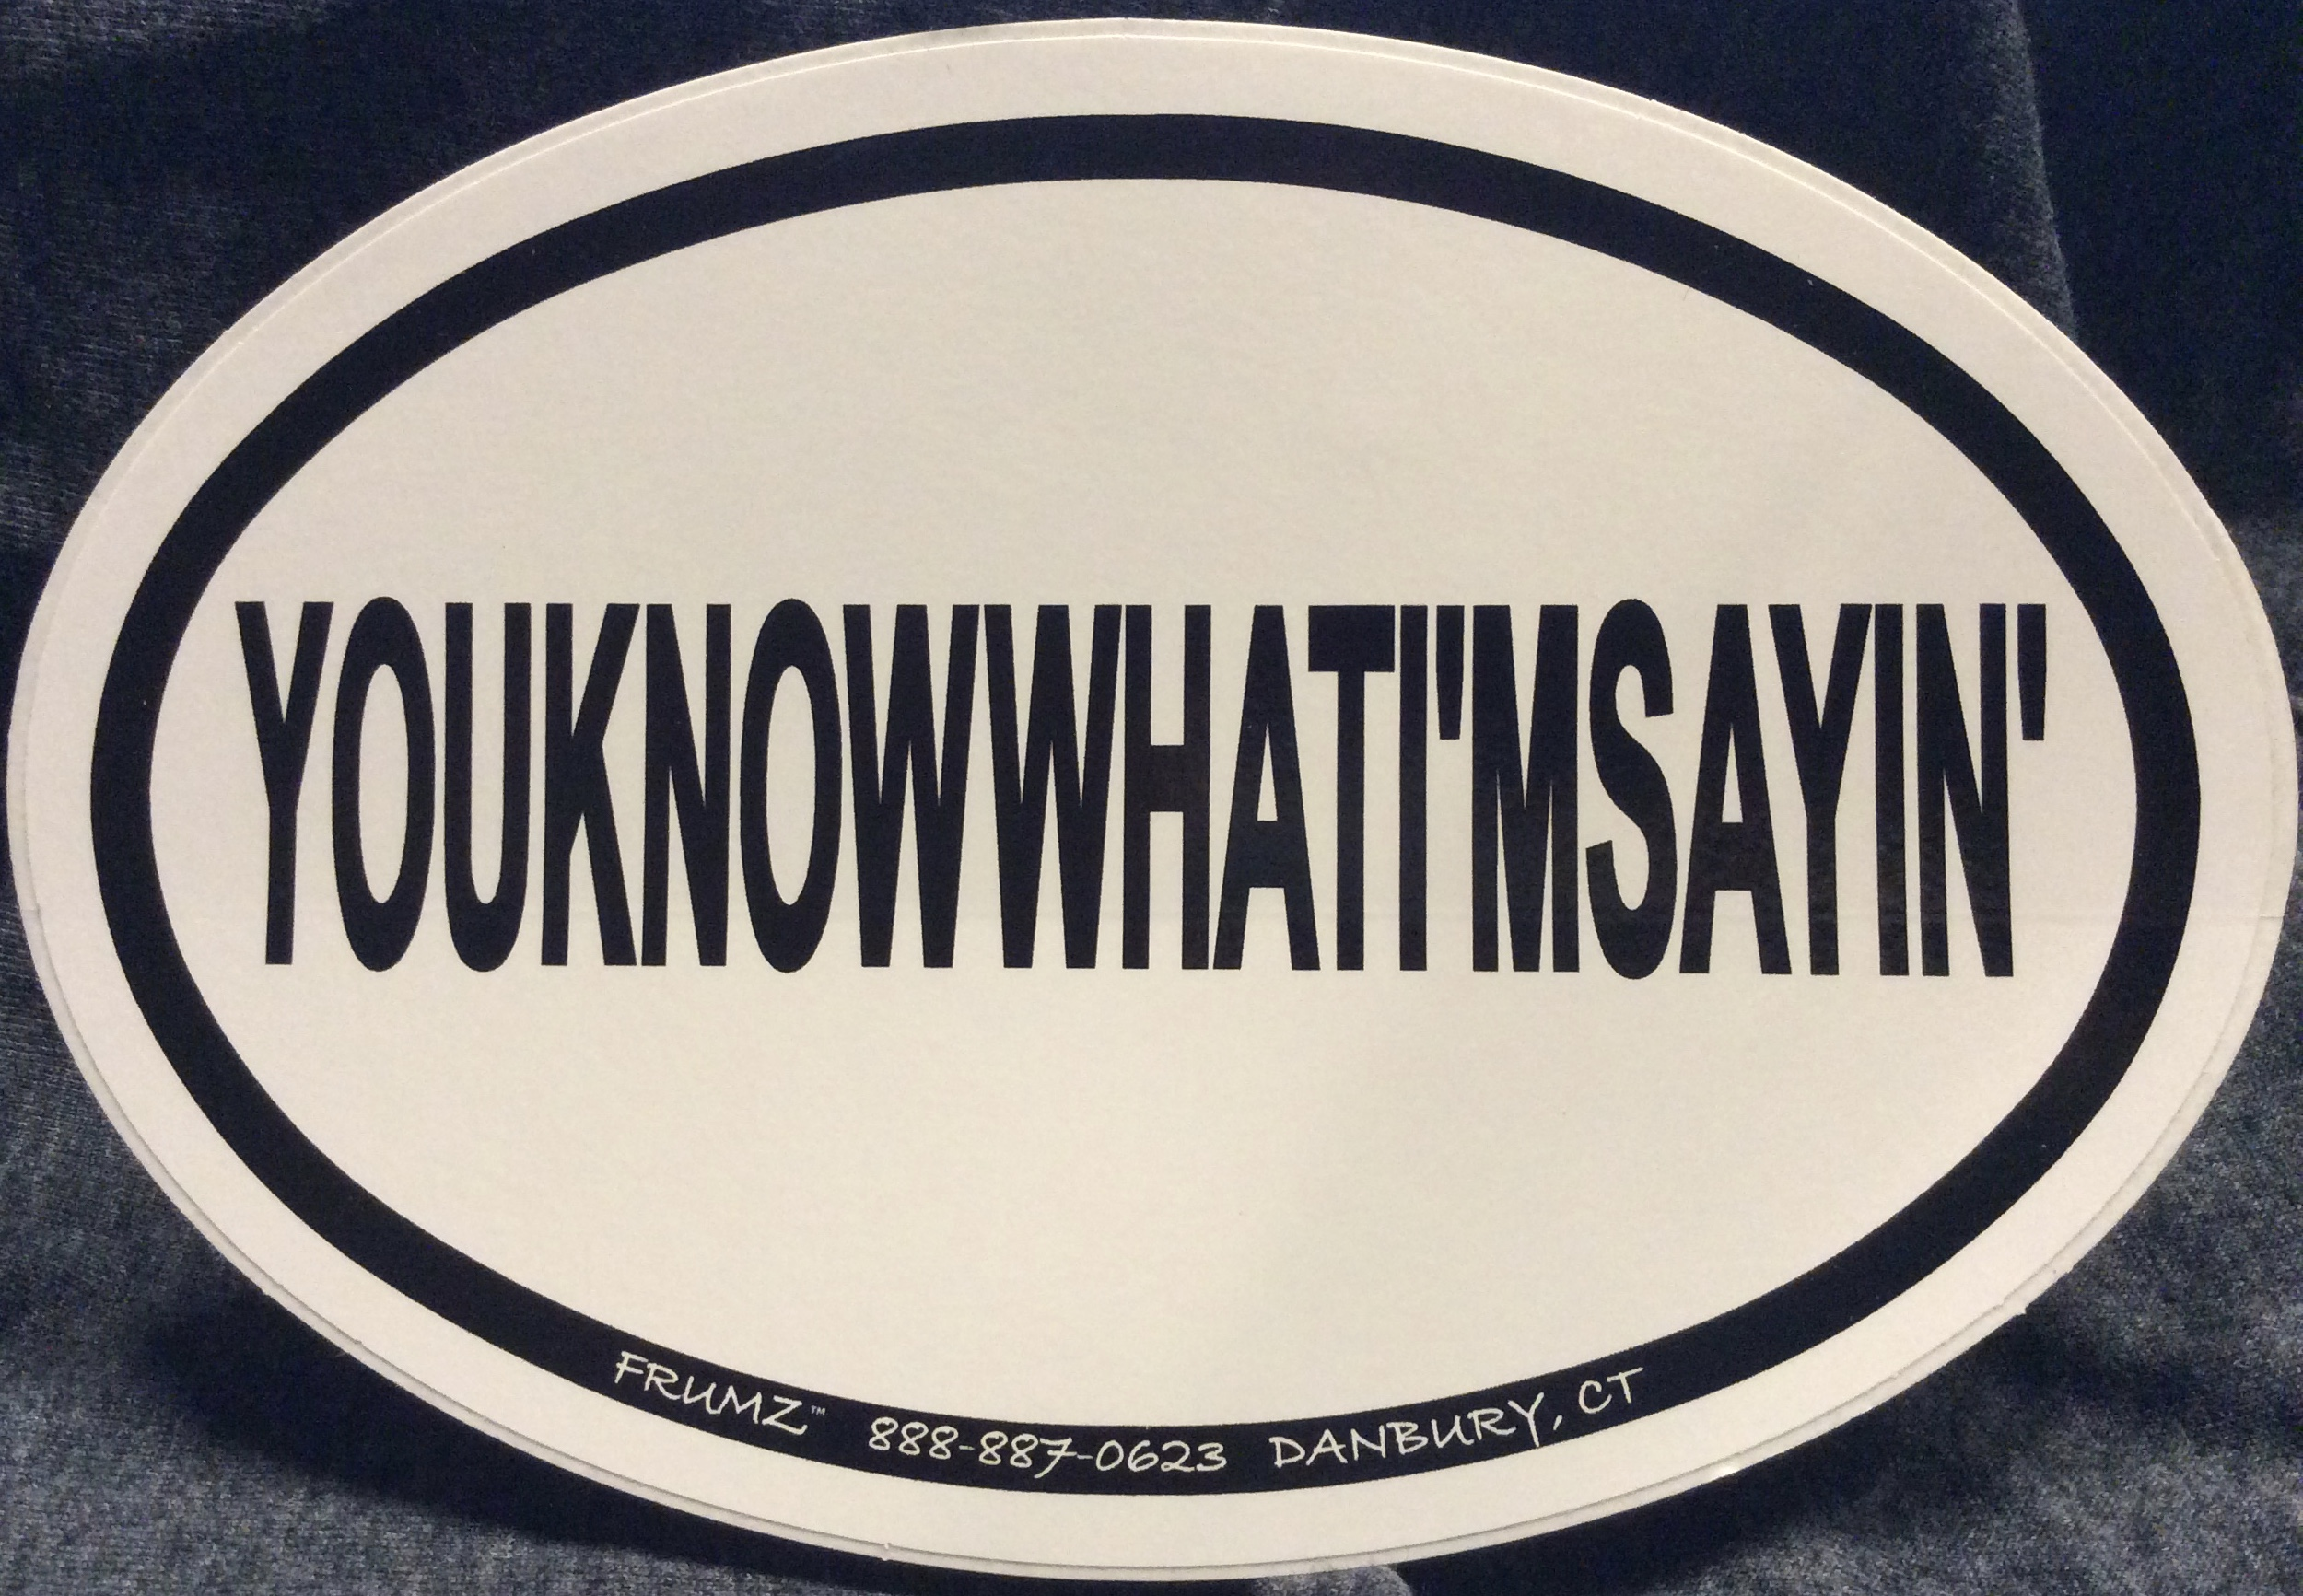 YOUKNOWWHATI'MSAYIN oval sticker decal